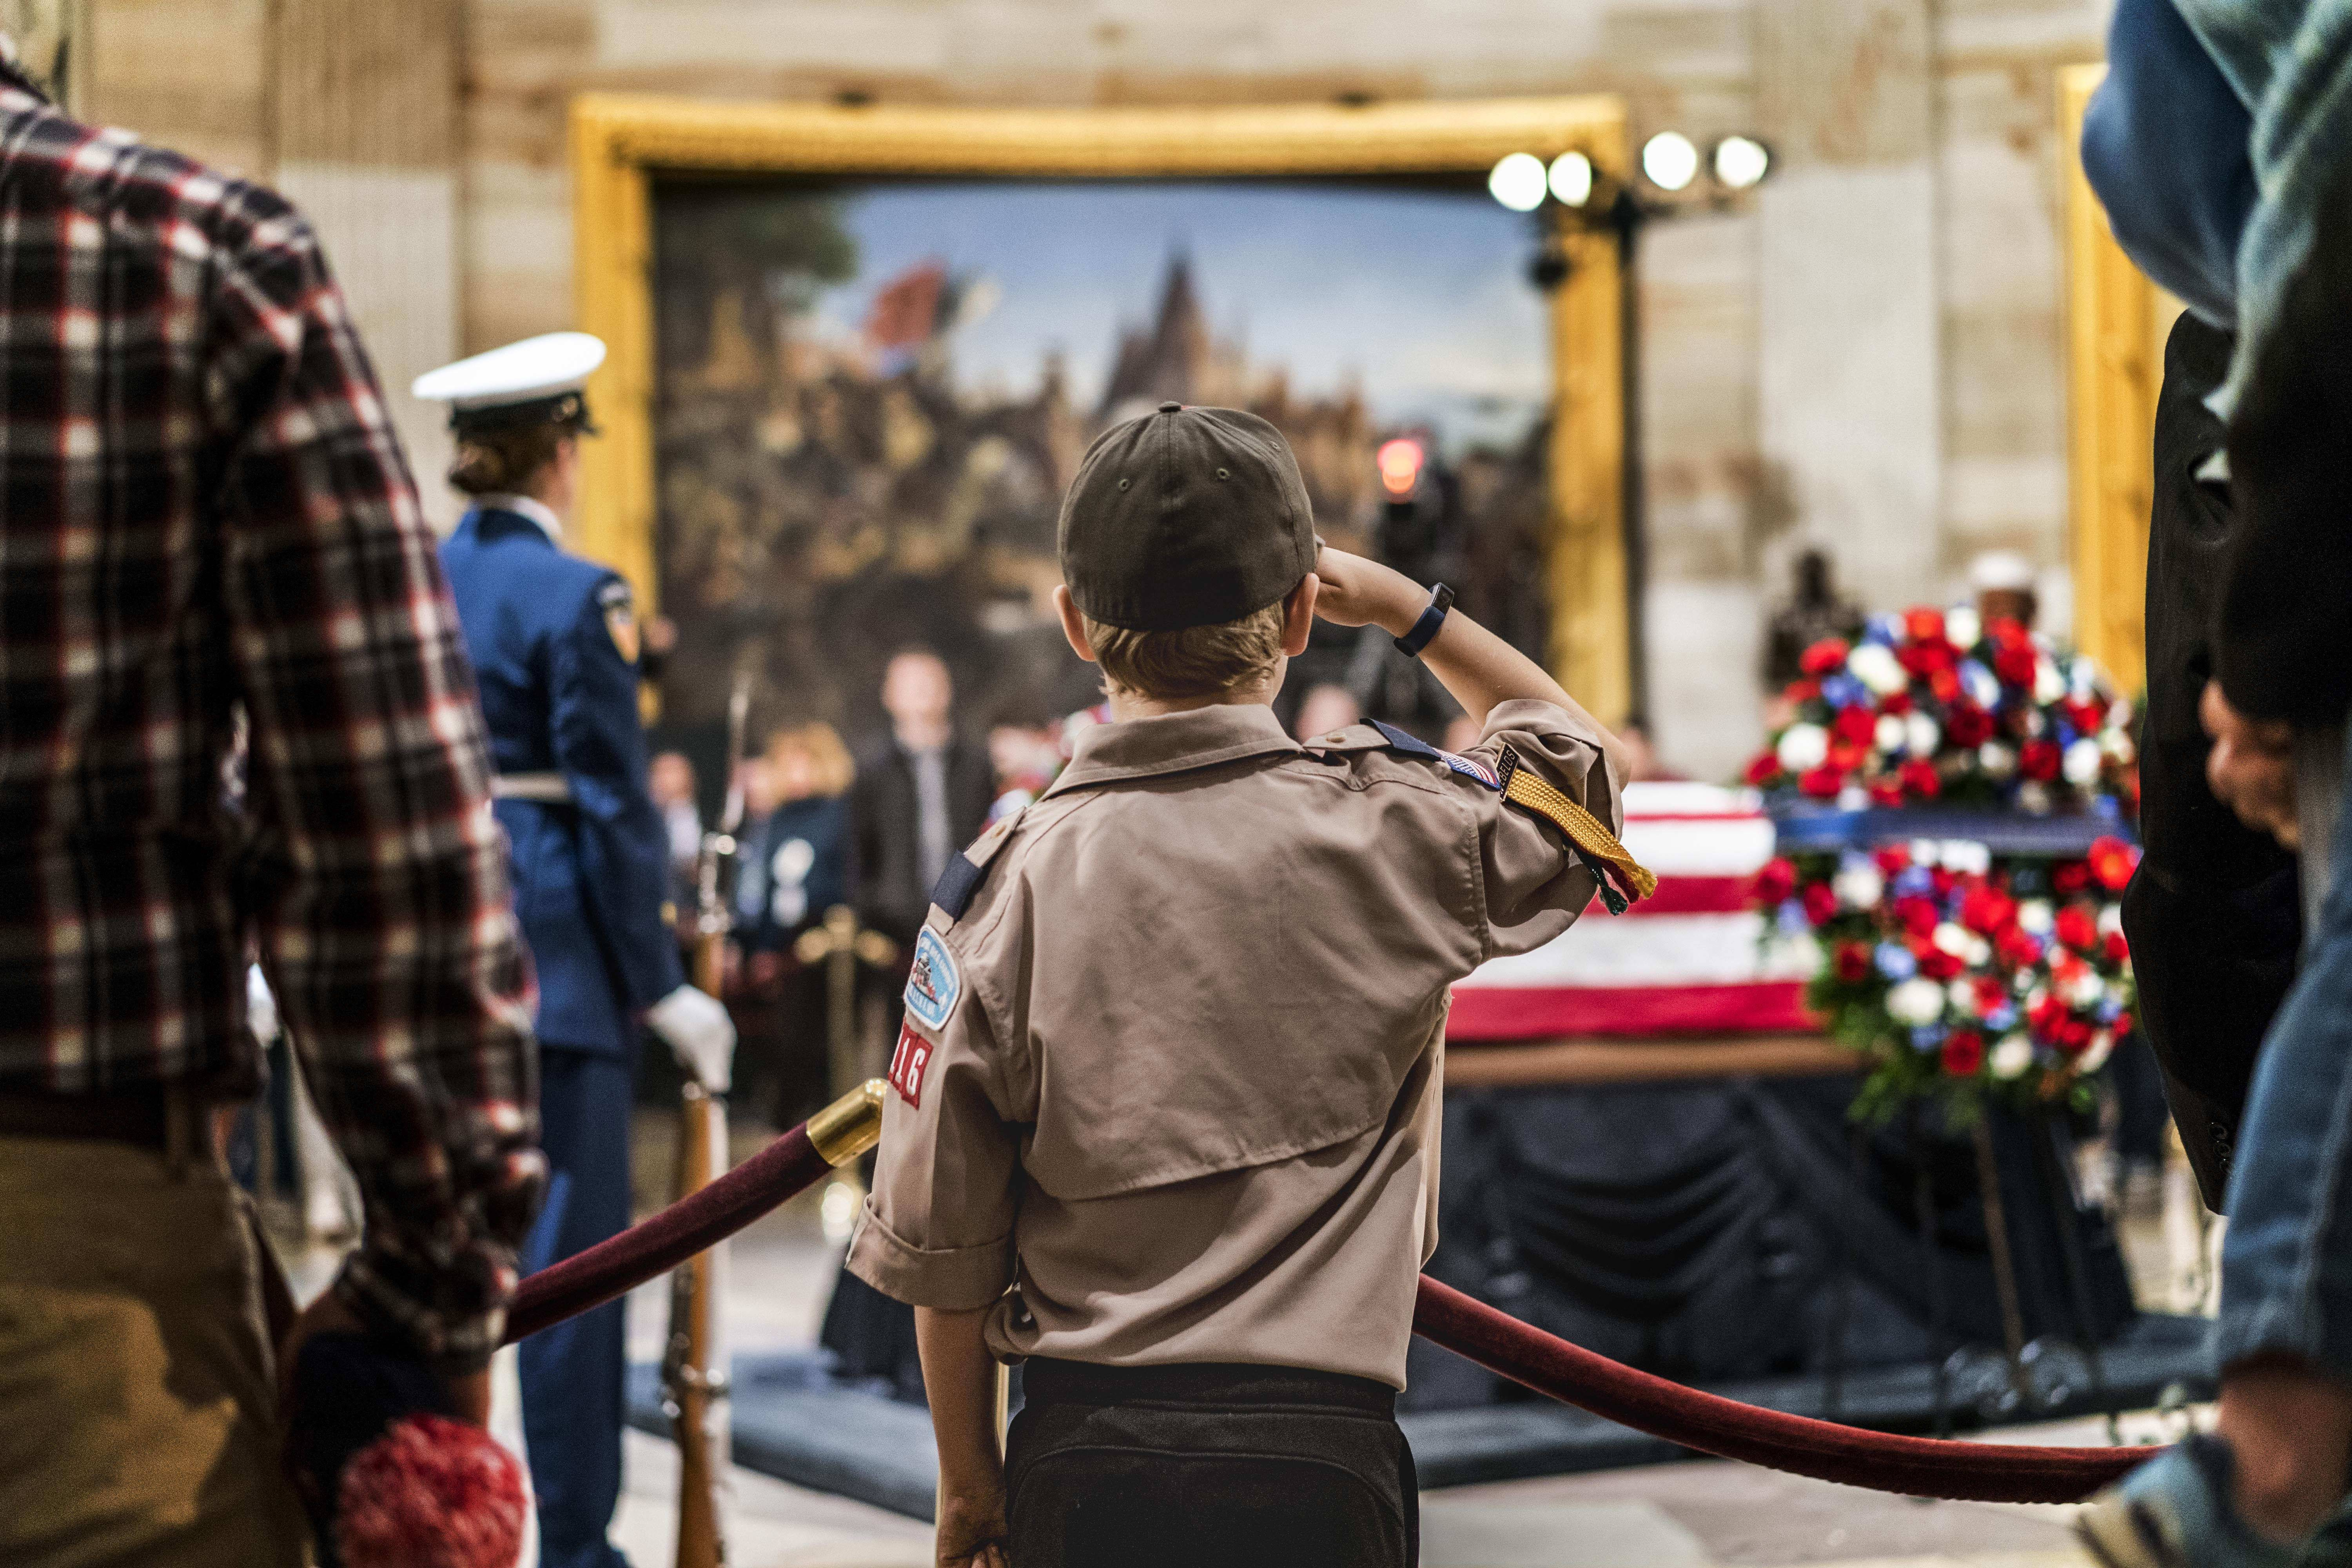 Crowds gather during the public viewing as former President George H.W. Bush lies in state at the U.S. Capitol rotunda in Washington.